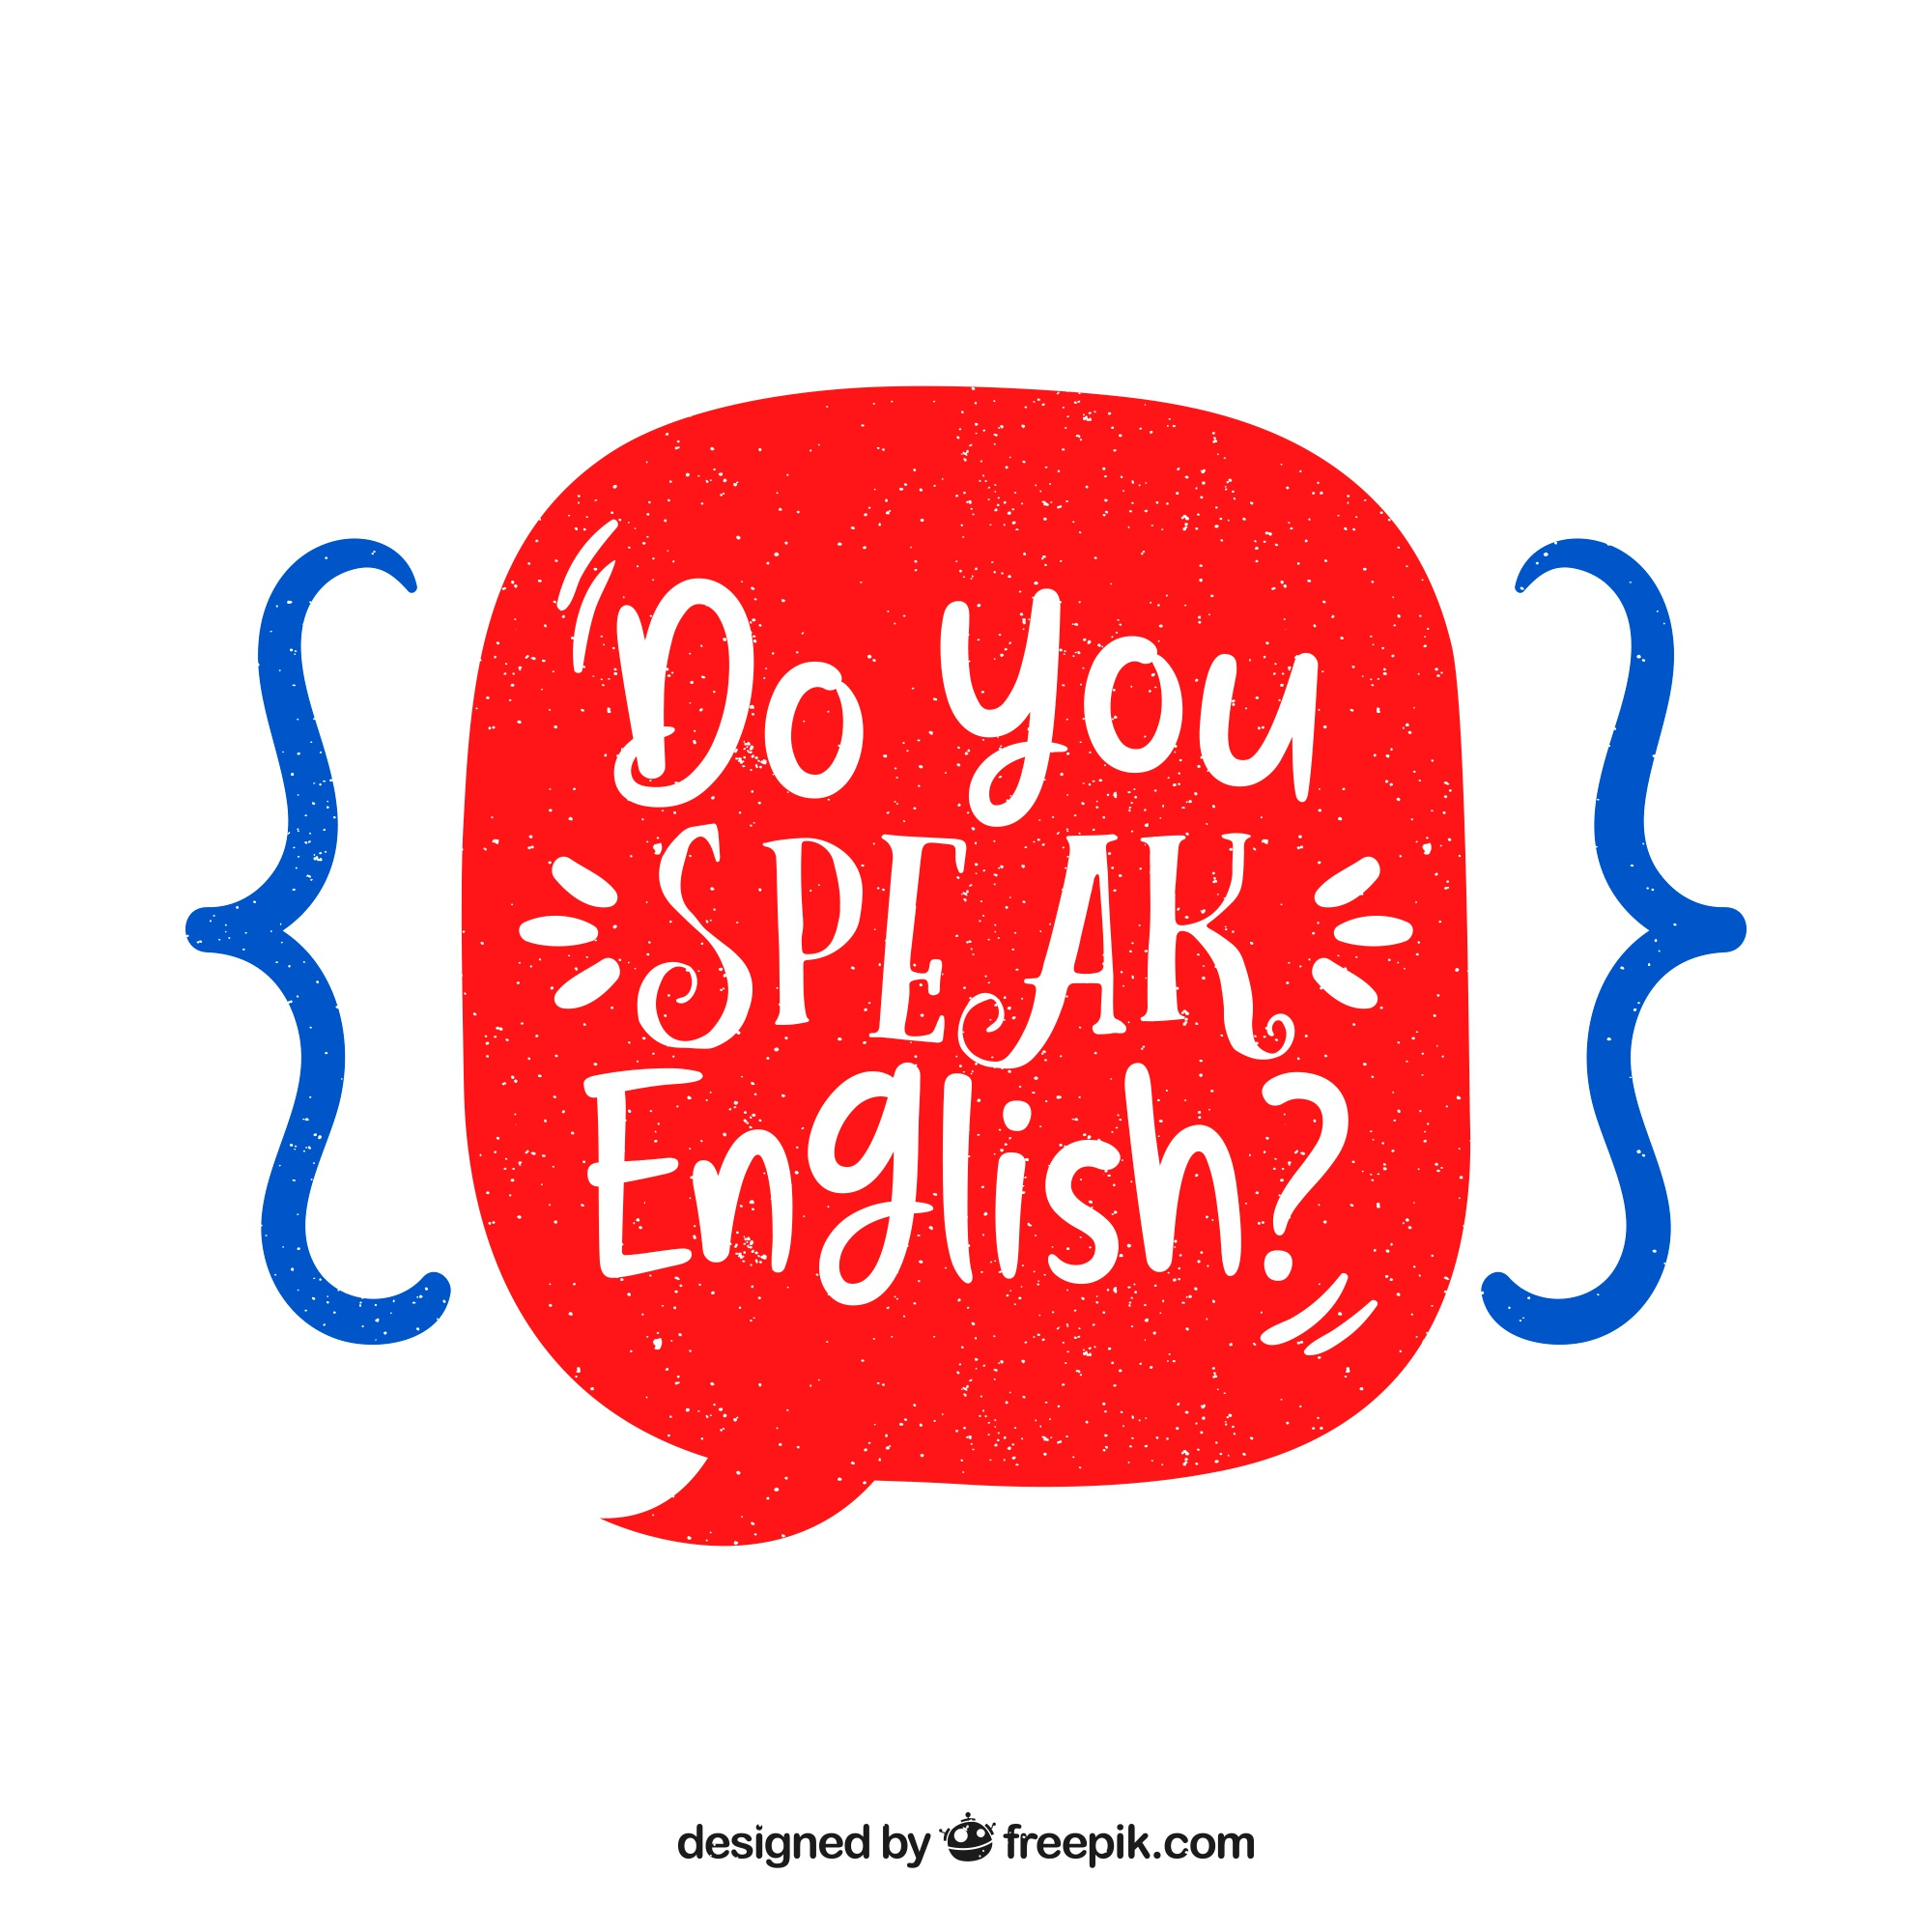 Do you speak english question with hand drawn style